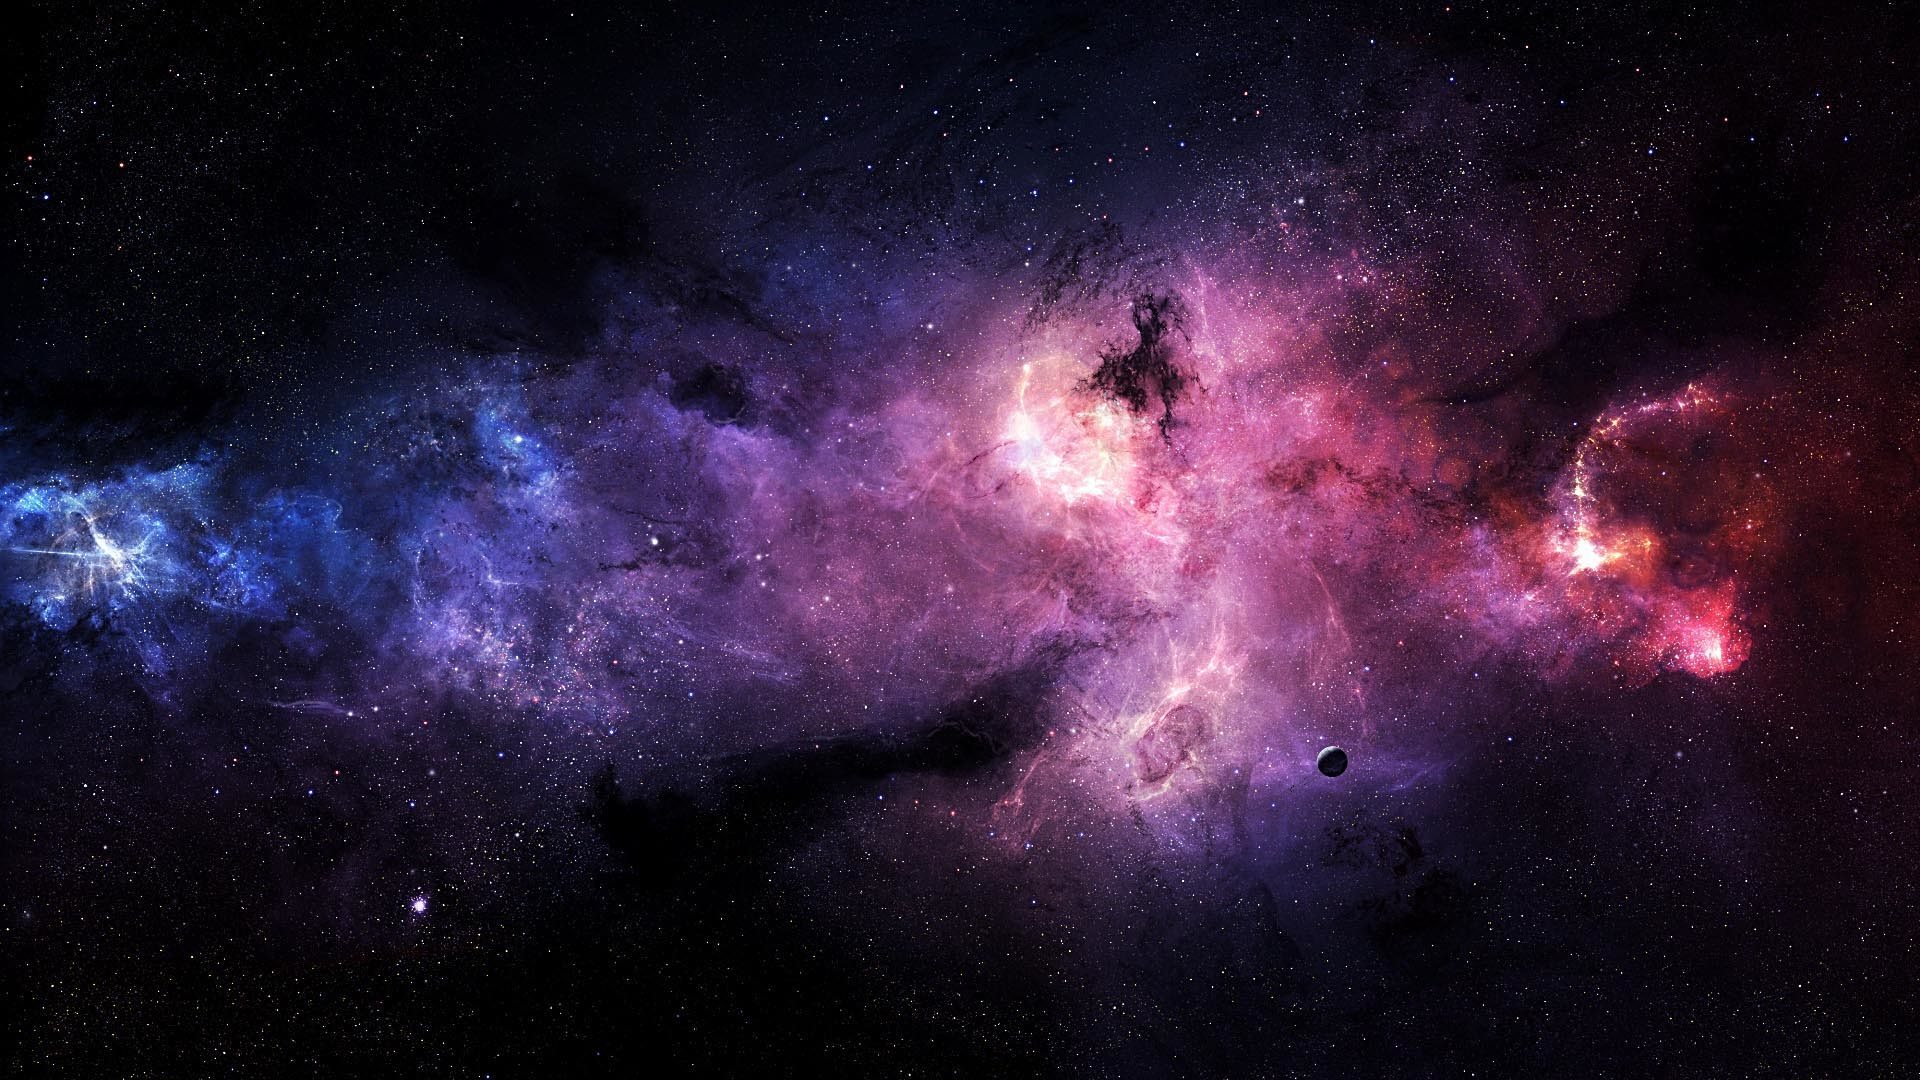 Wallpapers For > Blue And Purple Galaxy Wallpaper